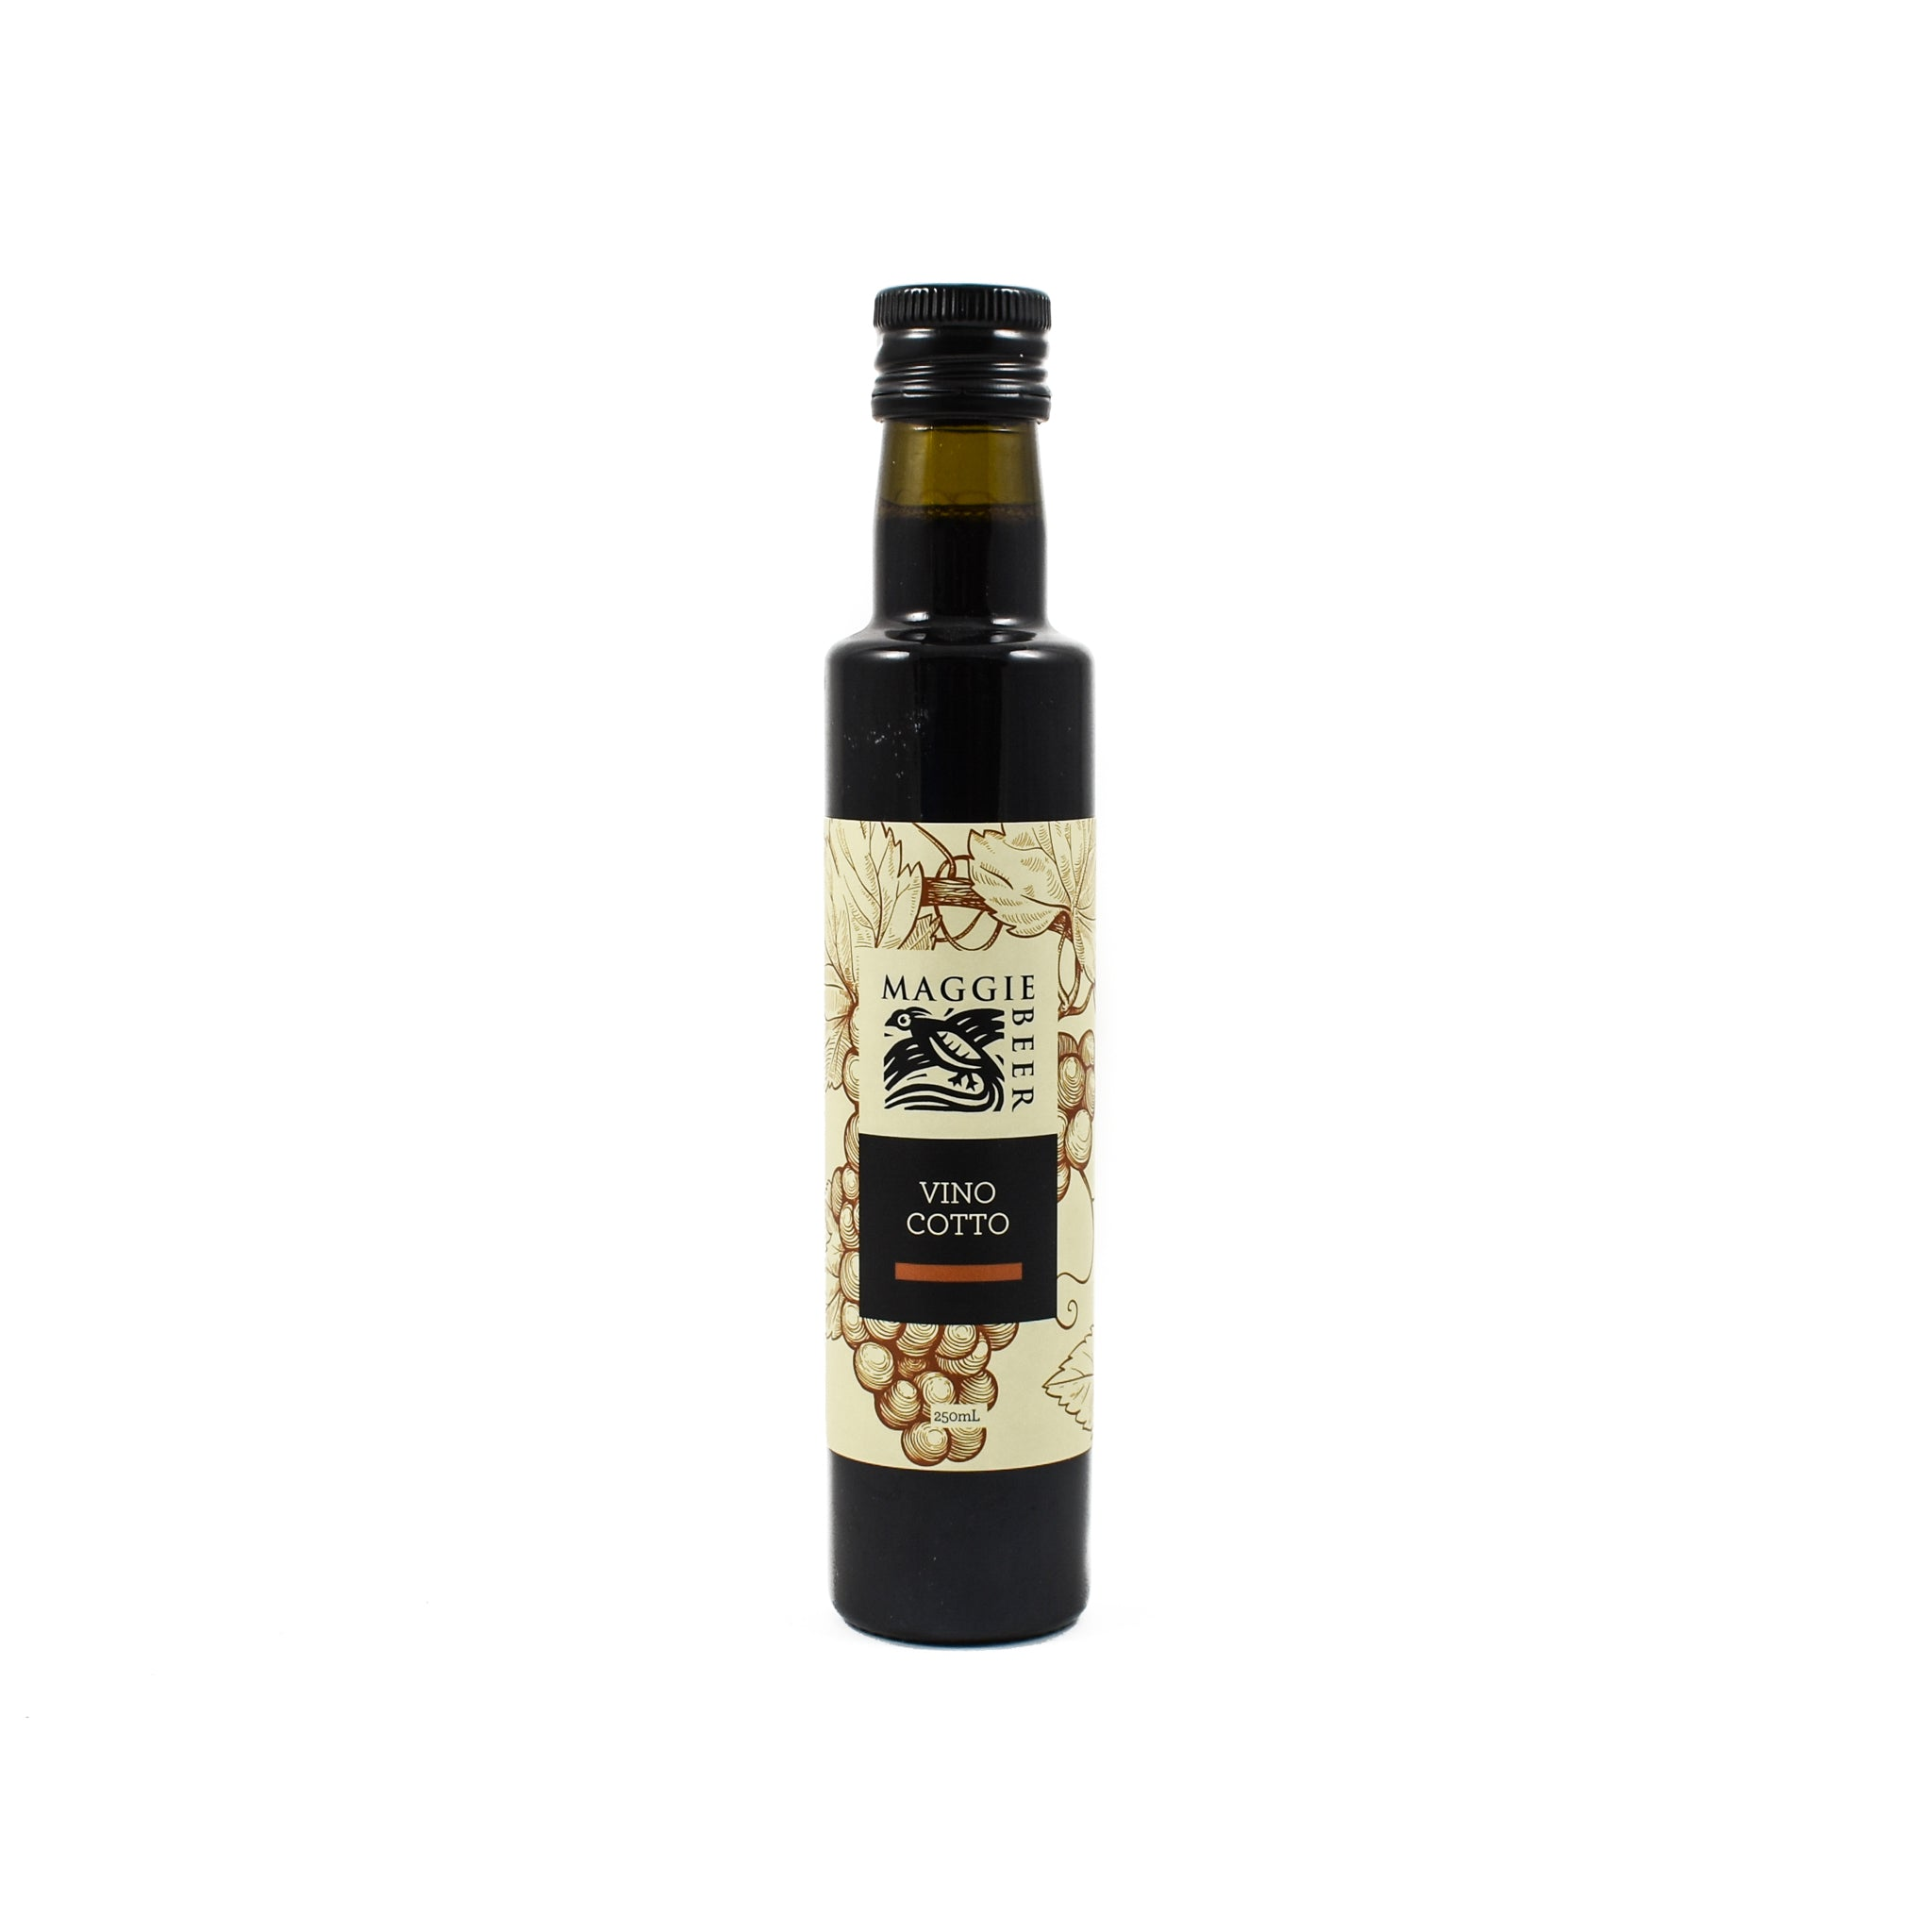 Maggie Beer's Vino Cotto 250ml Ingredients Oils & Vinegars